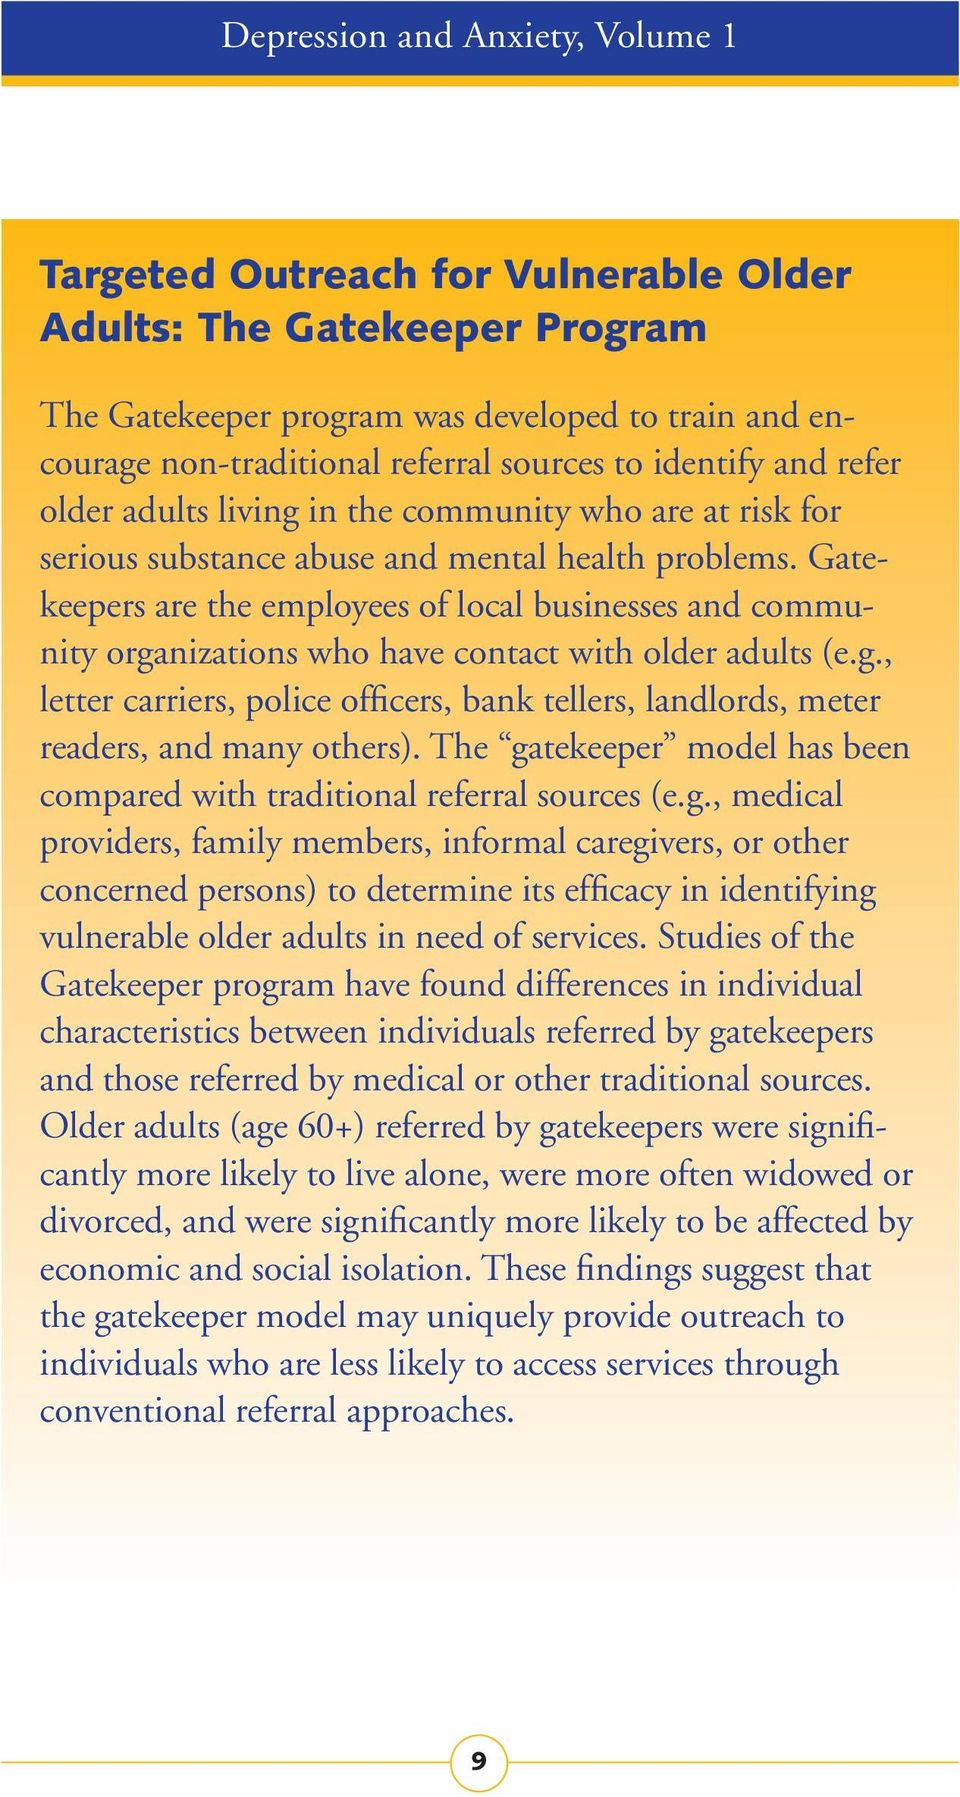 Gatekeepers are the employees of local businesses and community organizations who have contact with older adults (e.g., letter carriers, police officers, bank tellers, landlords, meter readers, and many others).